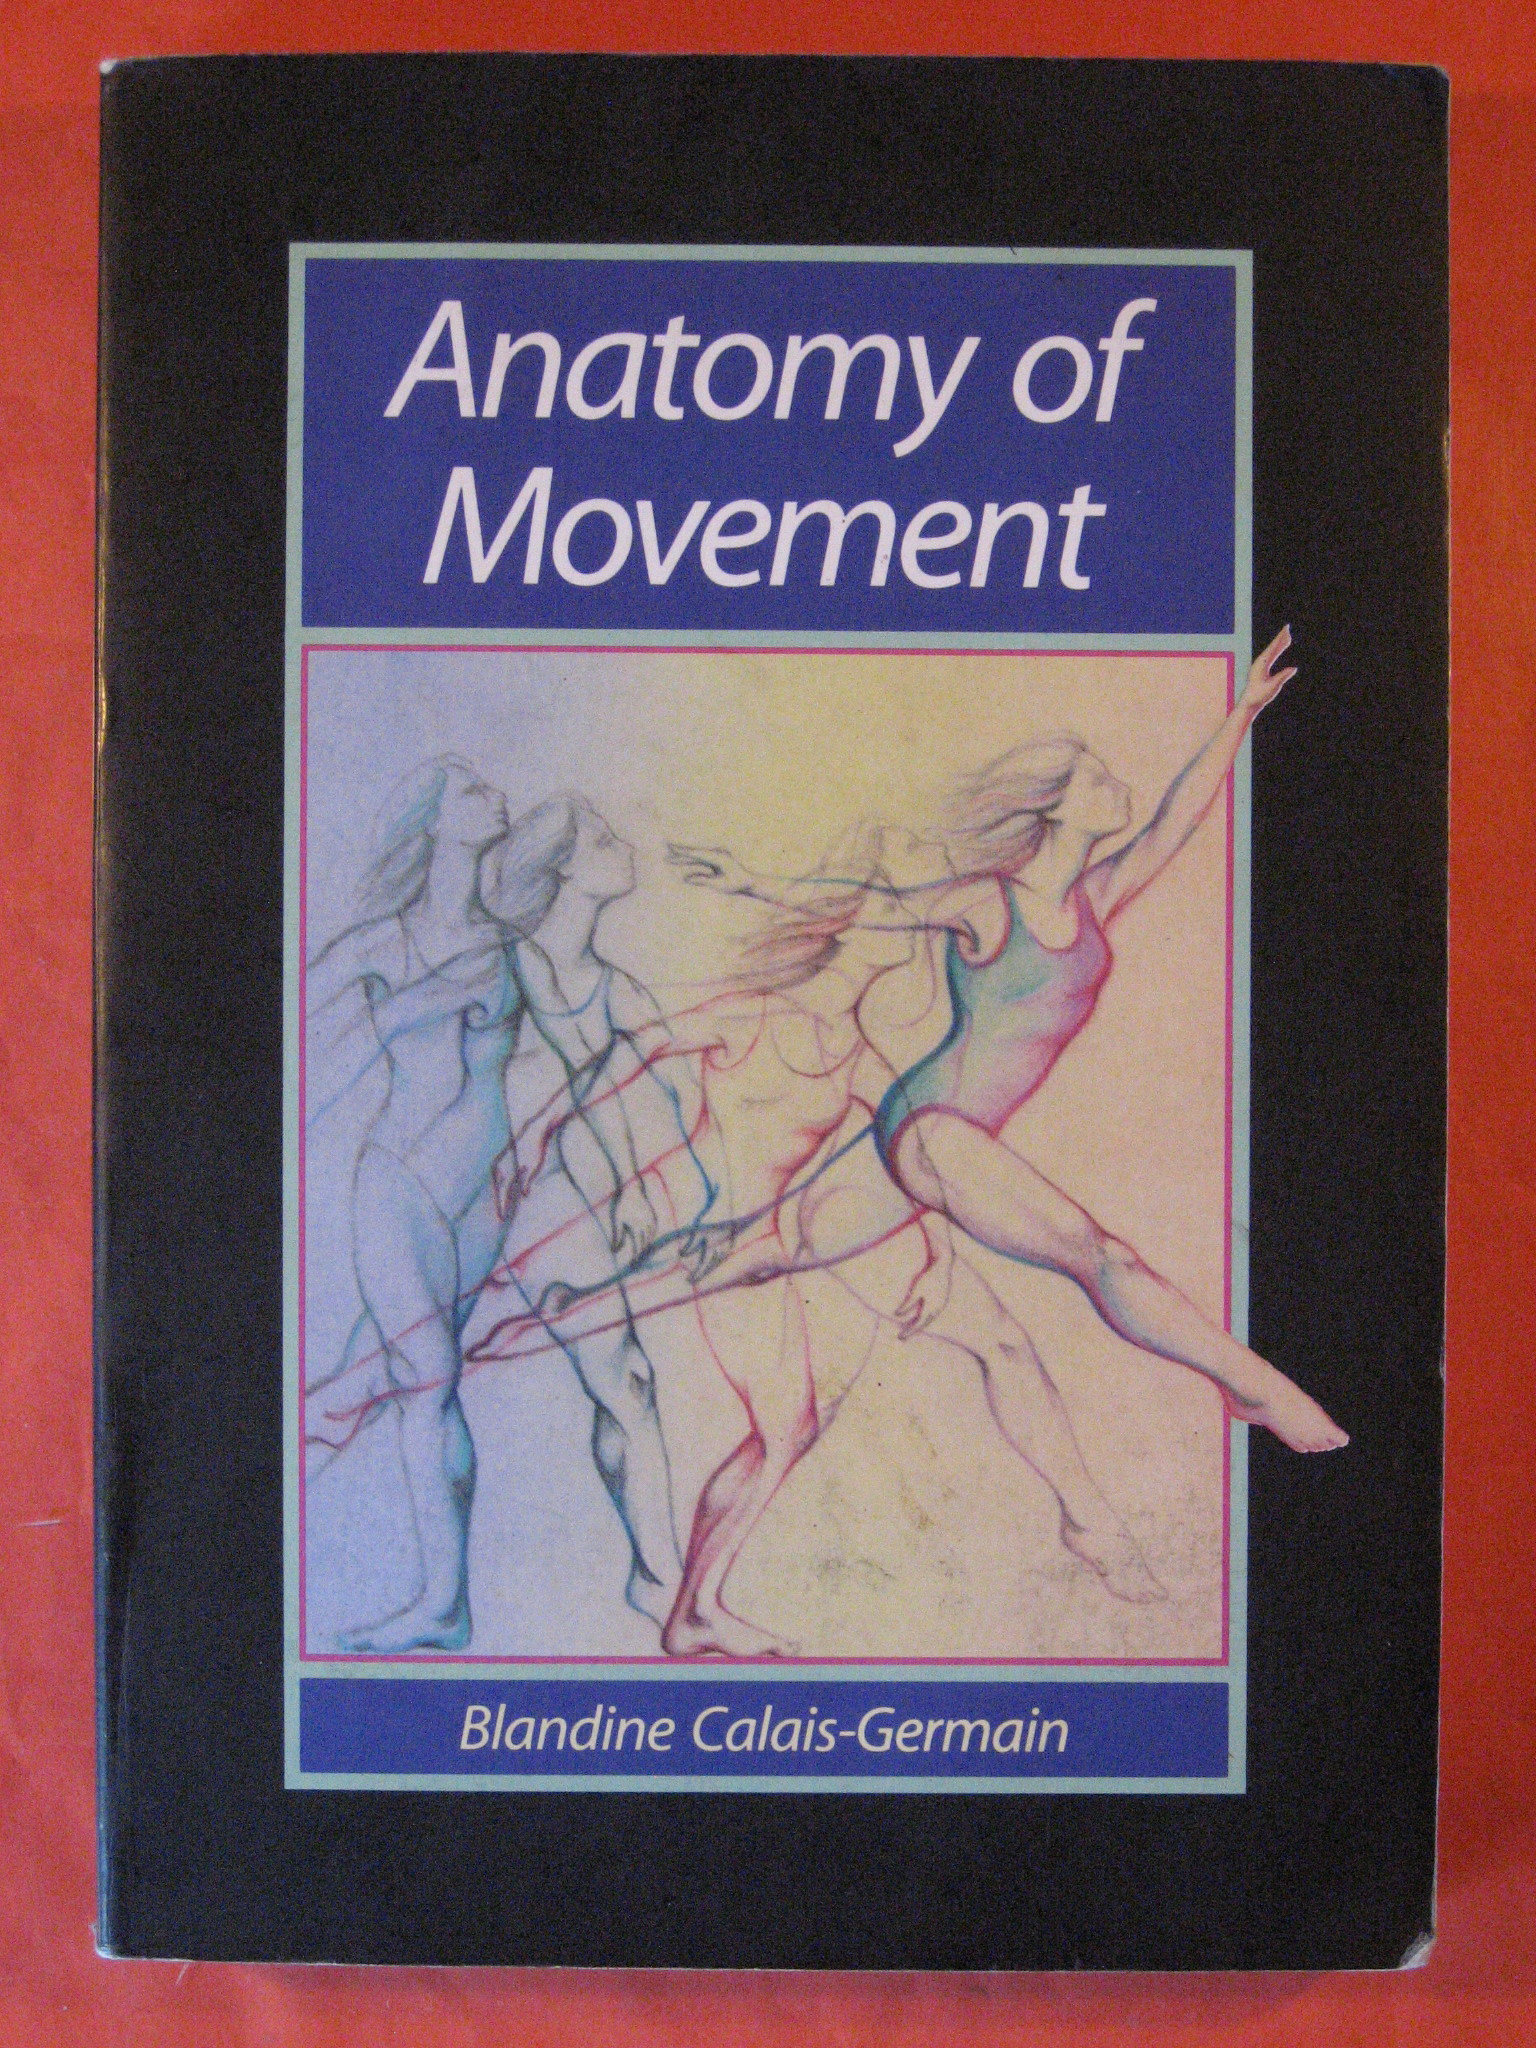 Anatomy of Movement, Blandine Calais-Germain